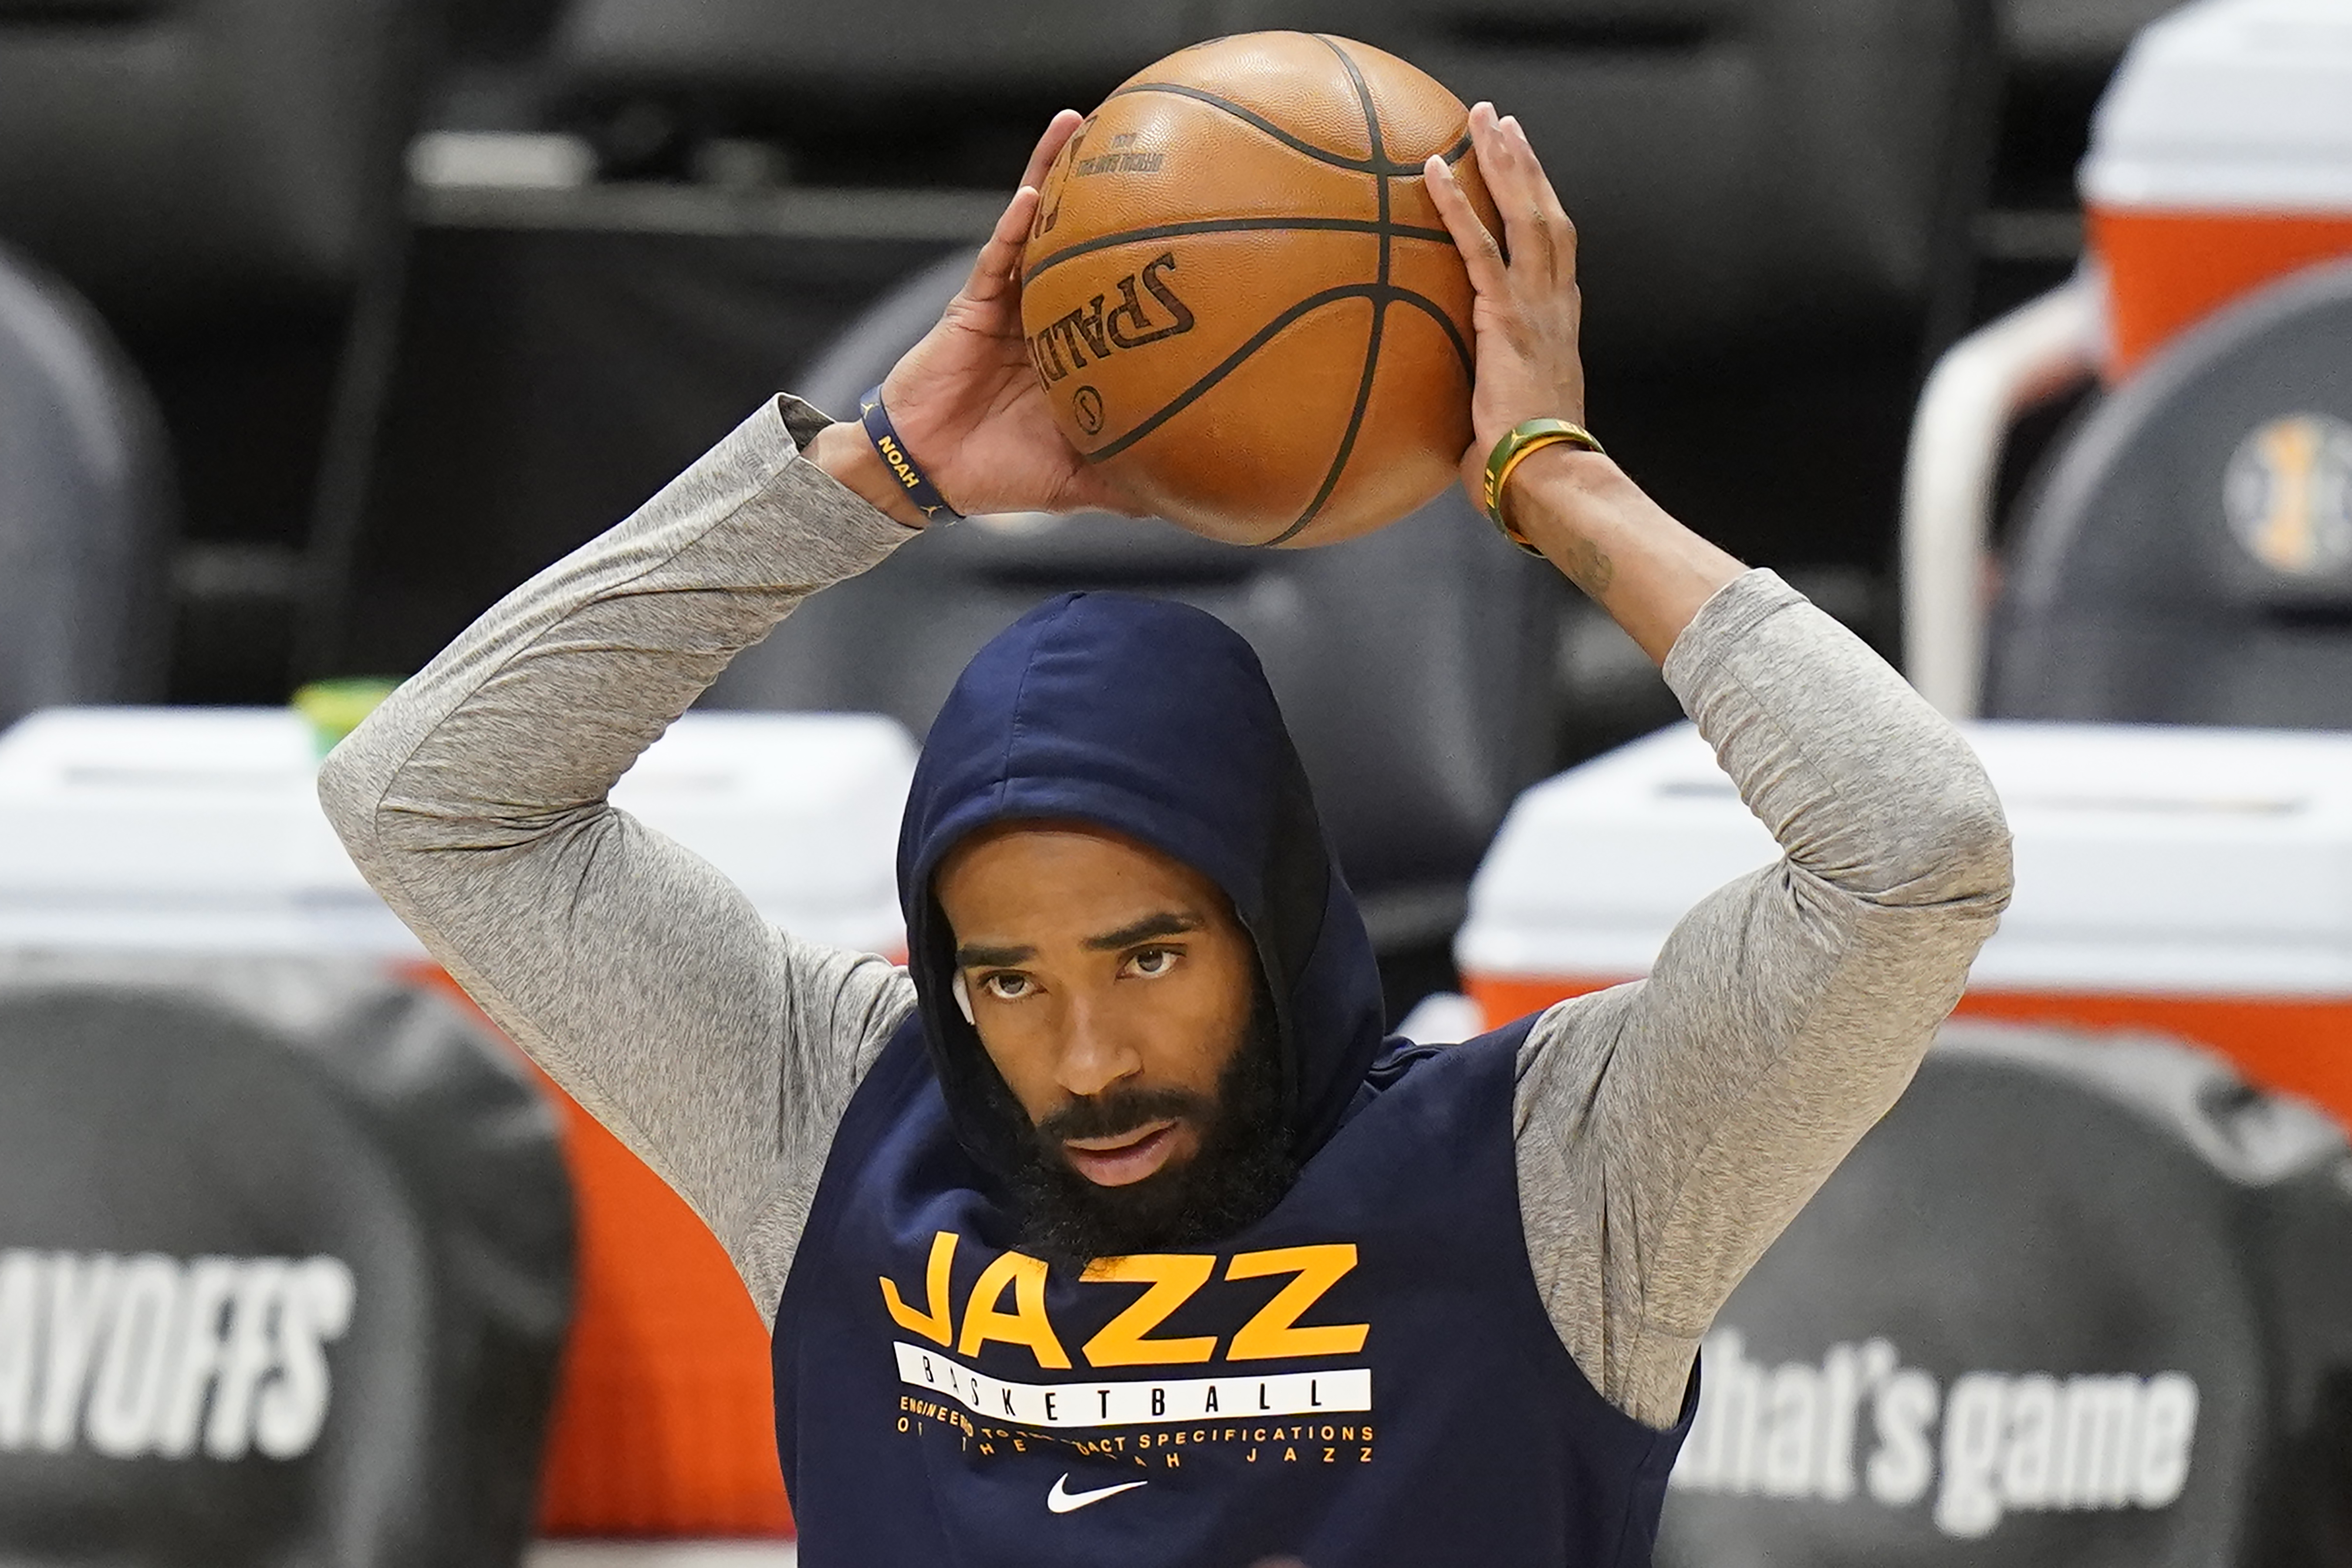 Utah Jazz guard Mike Conley stands on the court before Game 1 of the team's playoff series against the Los Angeles Clippers.